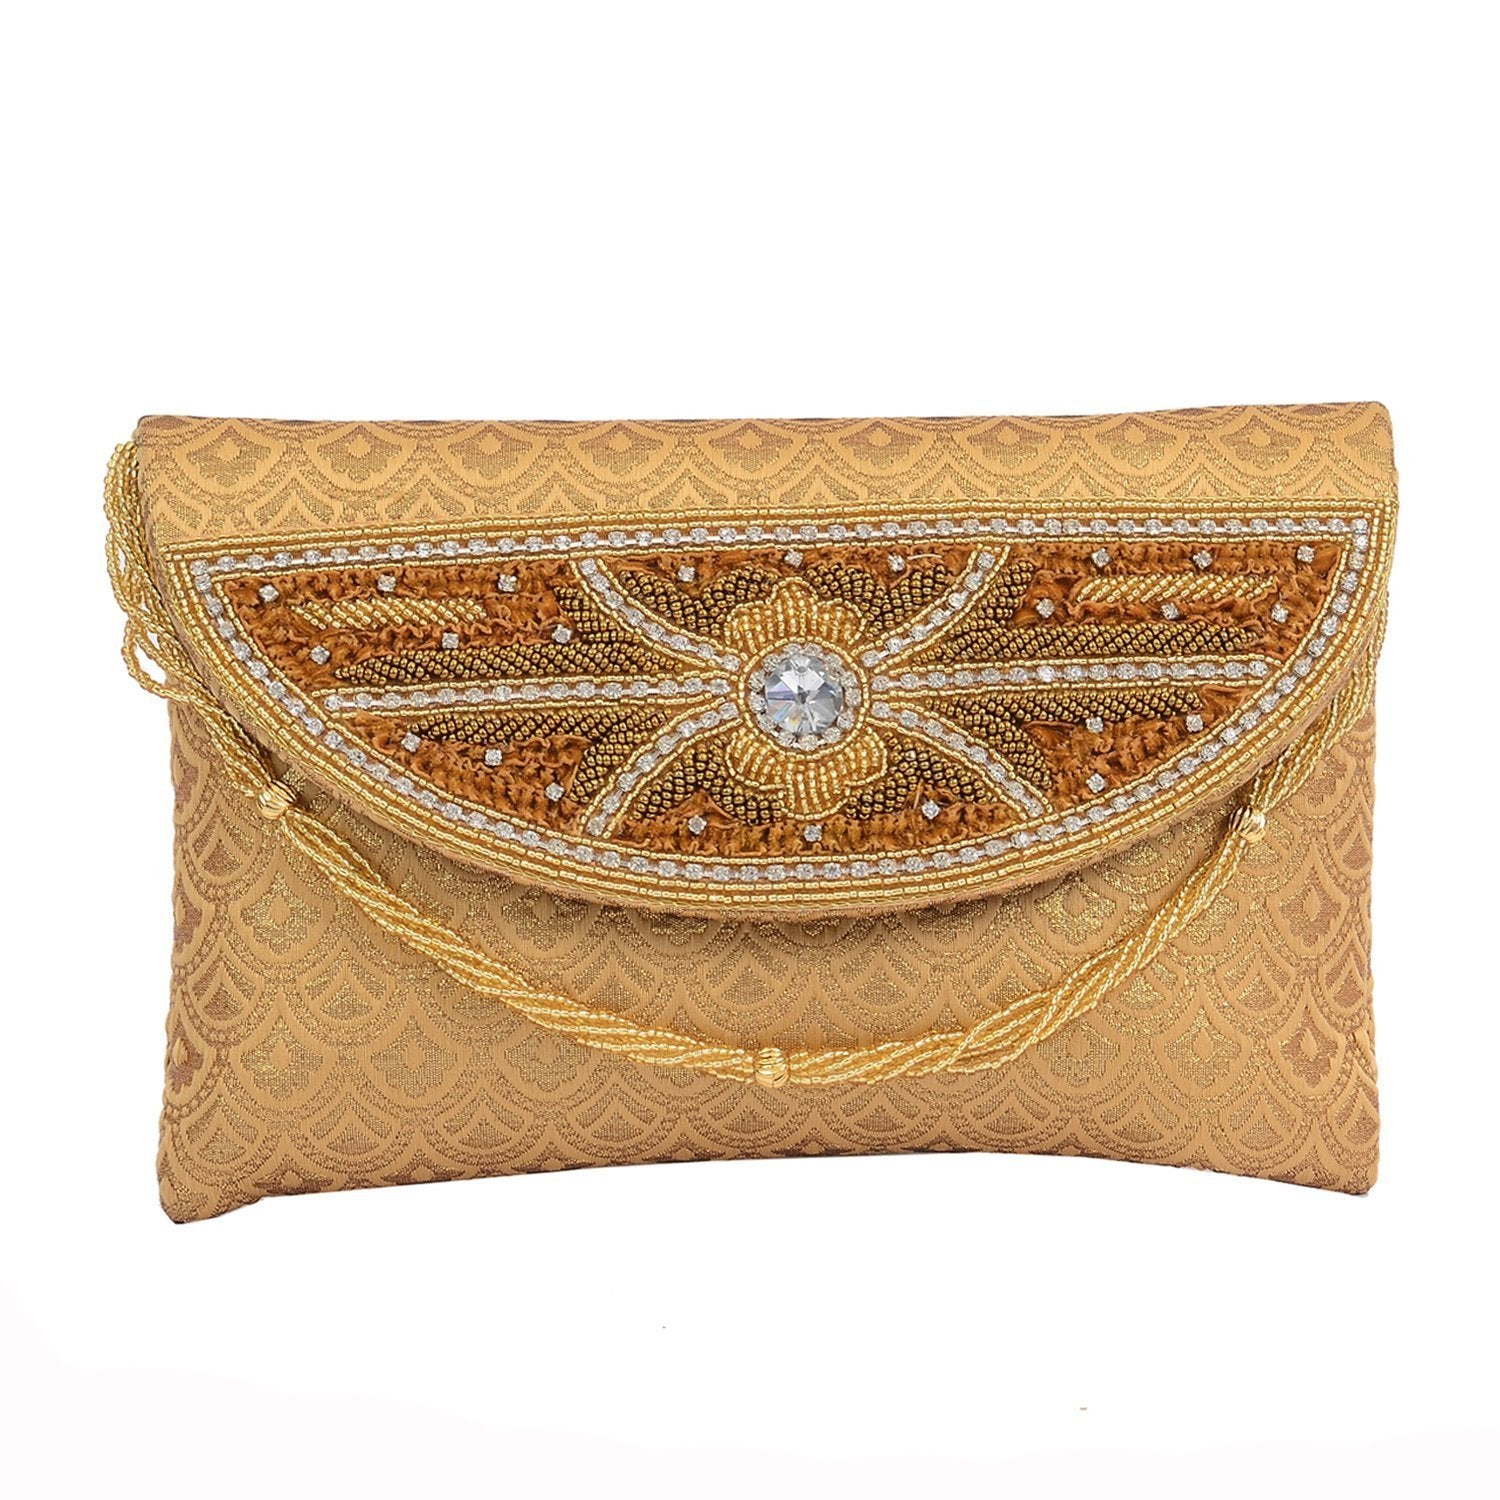 Handcrafted Ethnic Embroidery work Clutches - Bagaholics Gift